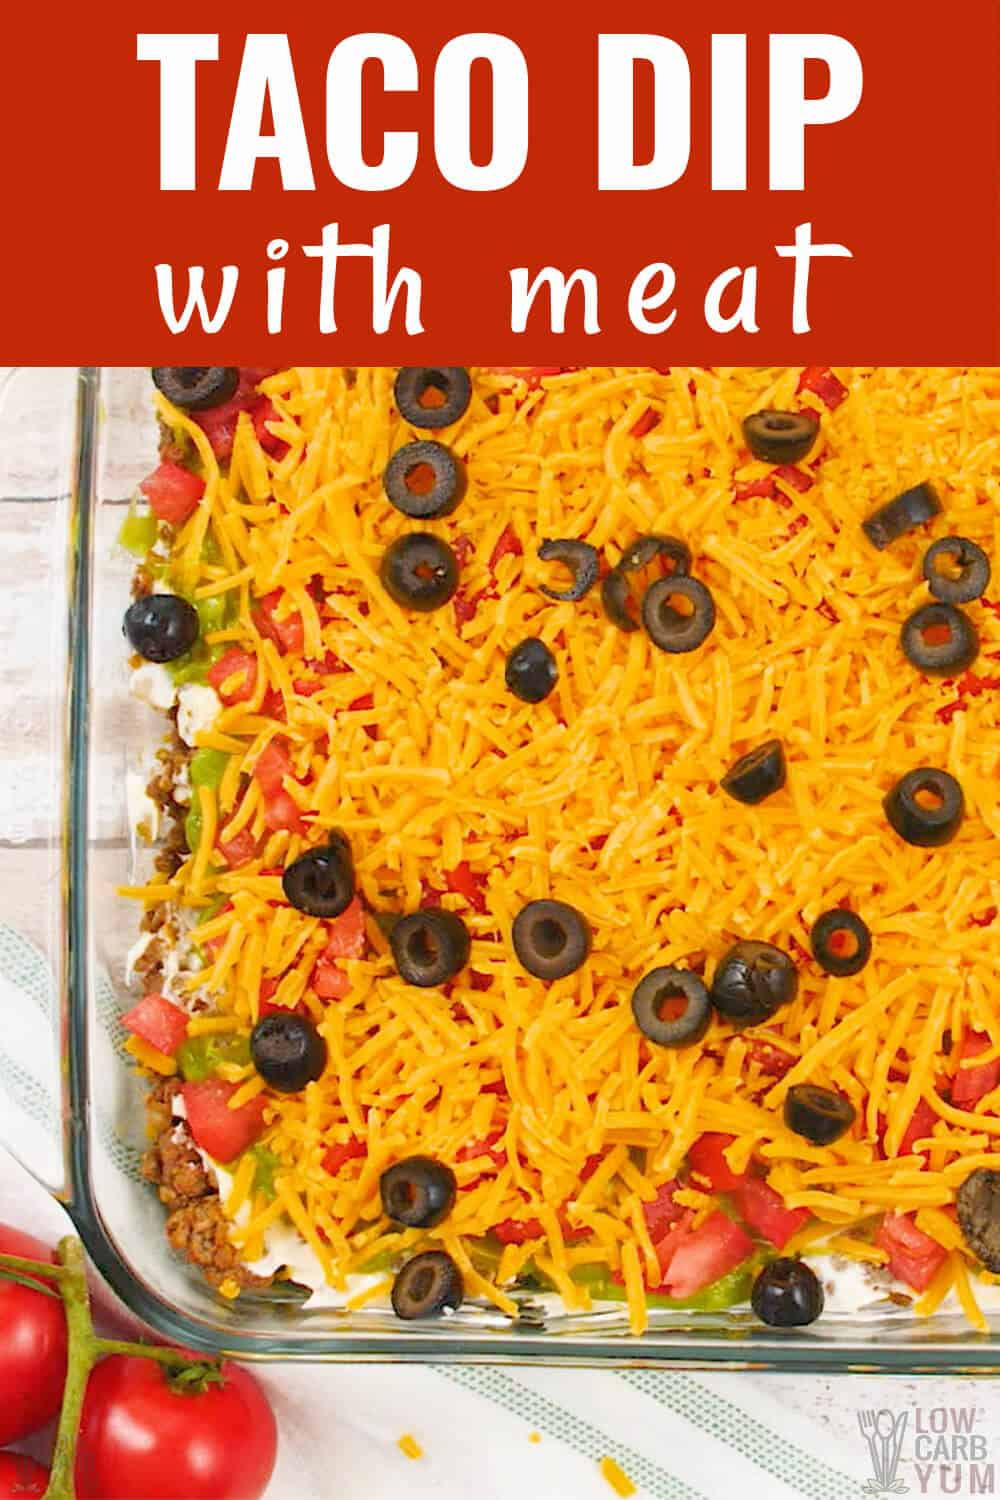 taco dip with meat cover image